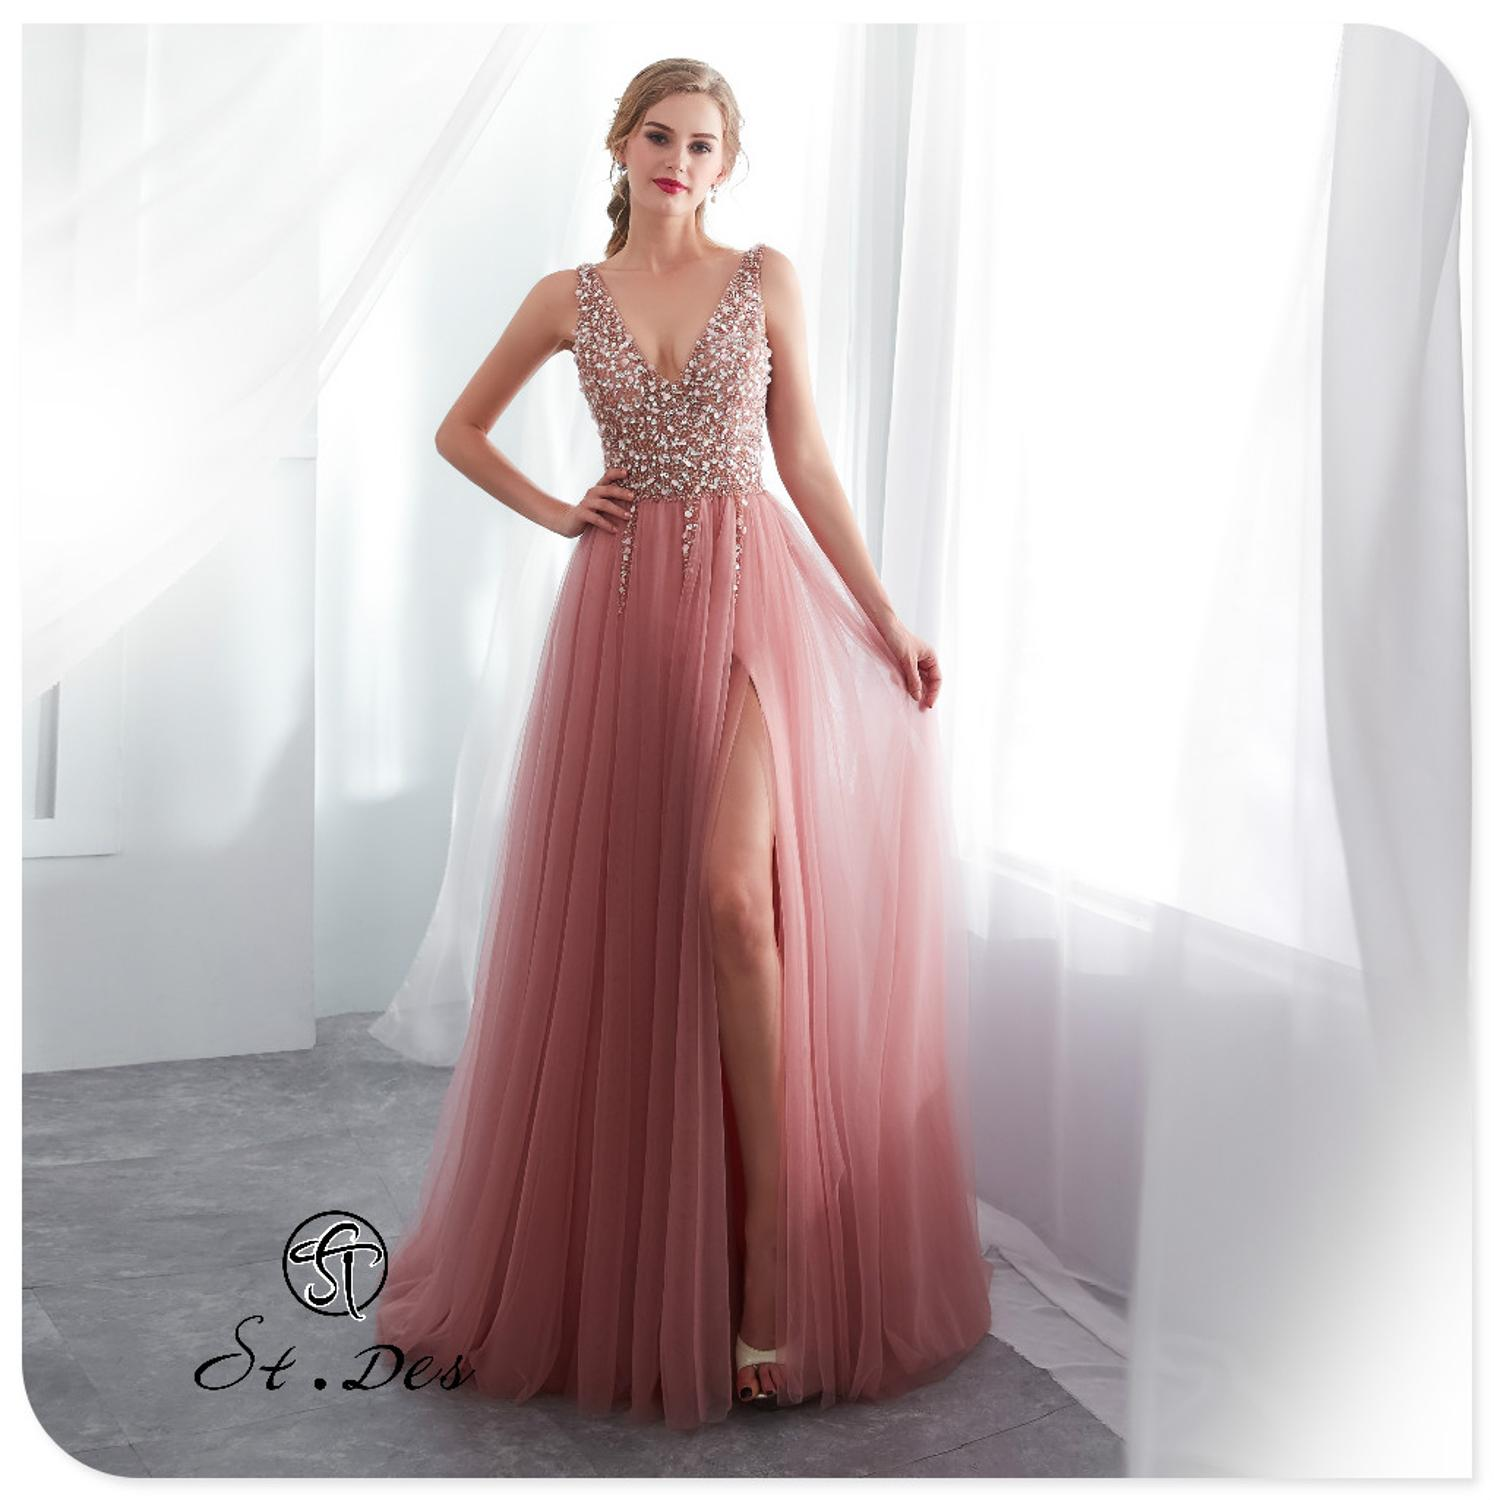 S.T.DES Evening Dress 2020 New Arrival Beading A-line V-Neck Pink Sleeveless Designer Floor Length Party Dress Dinner Gowns